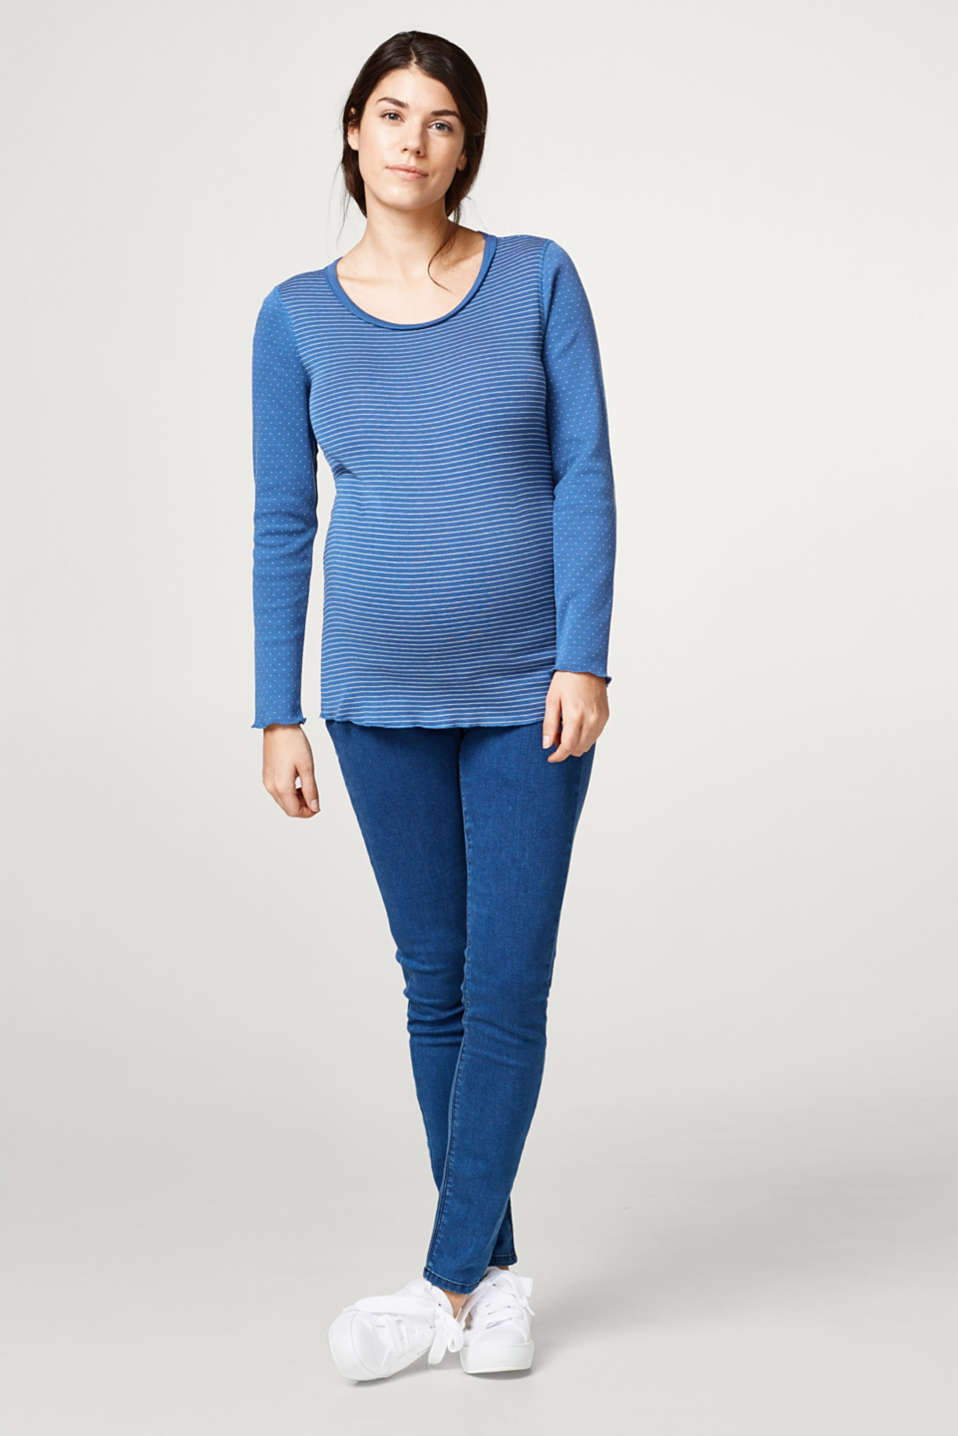 Esprit - Pure cotton jersey long sleeve top